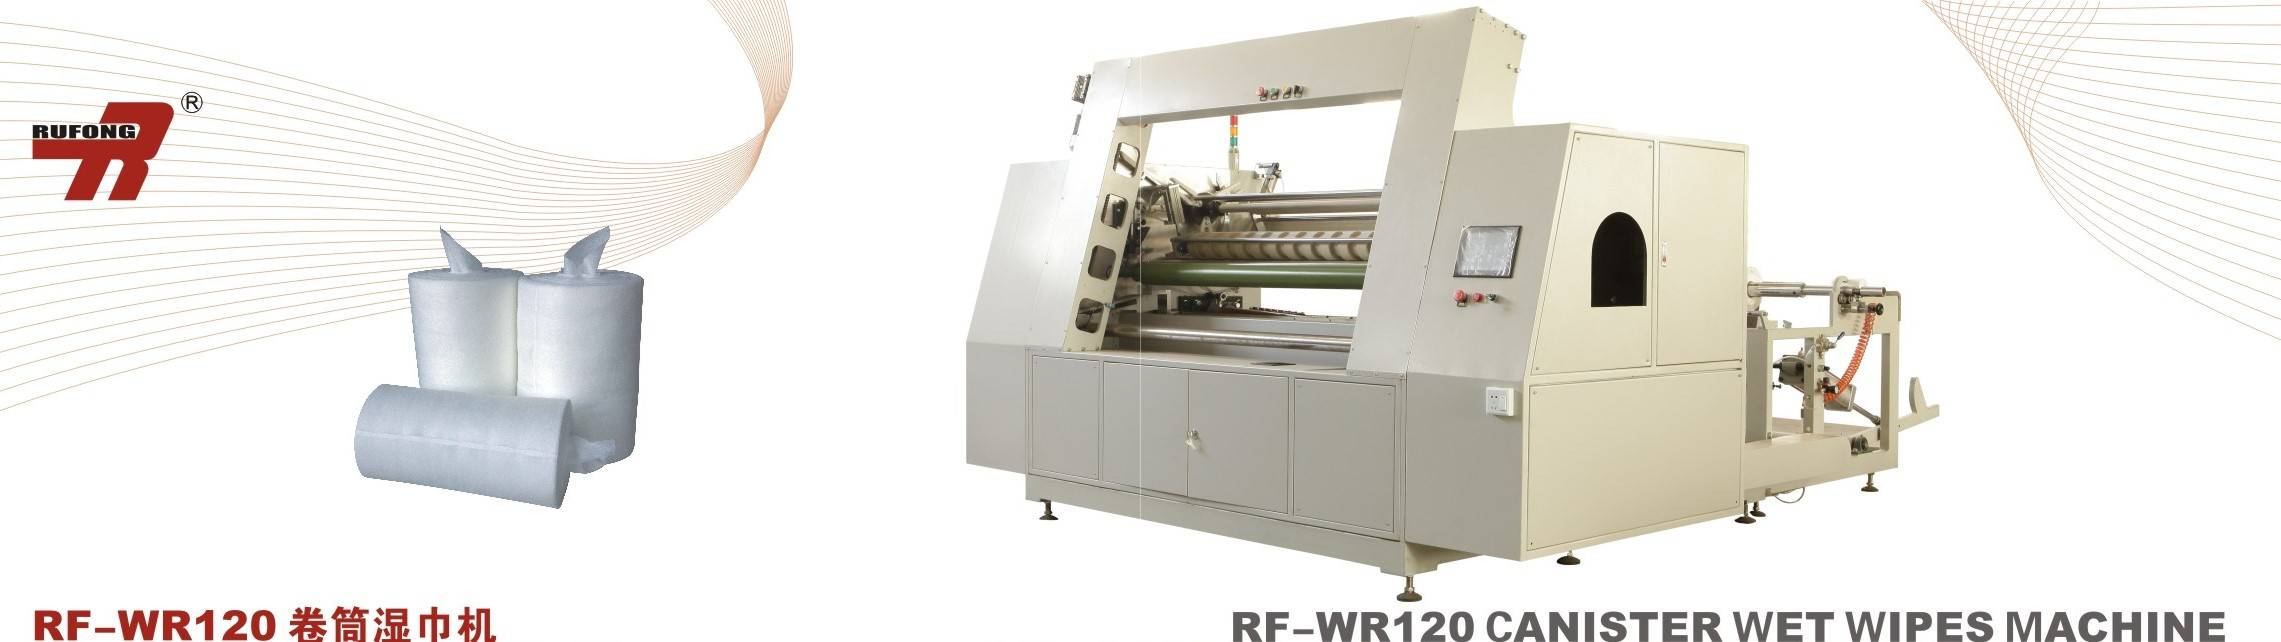 RF-WR150 Canister Wet Wipes Machine